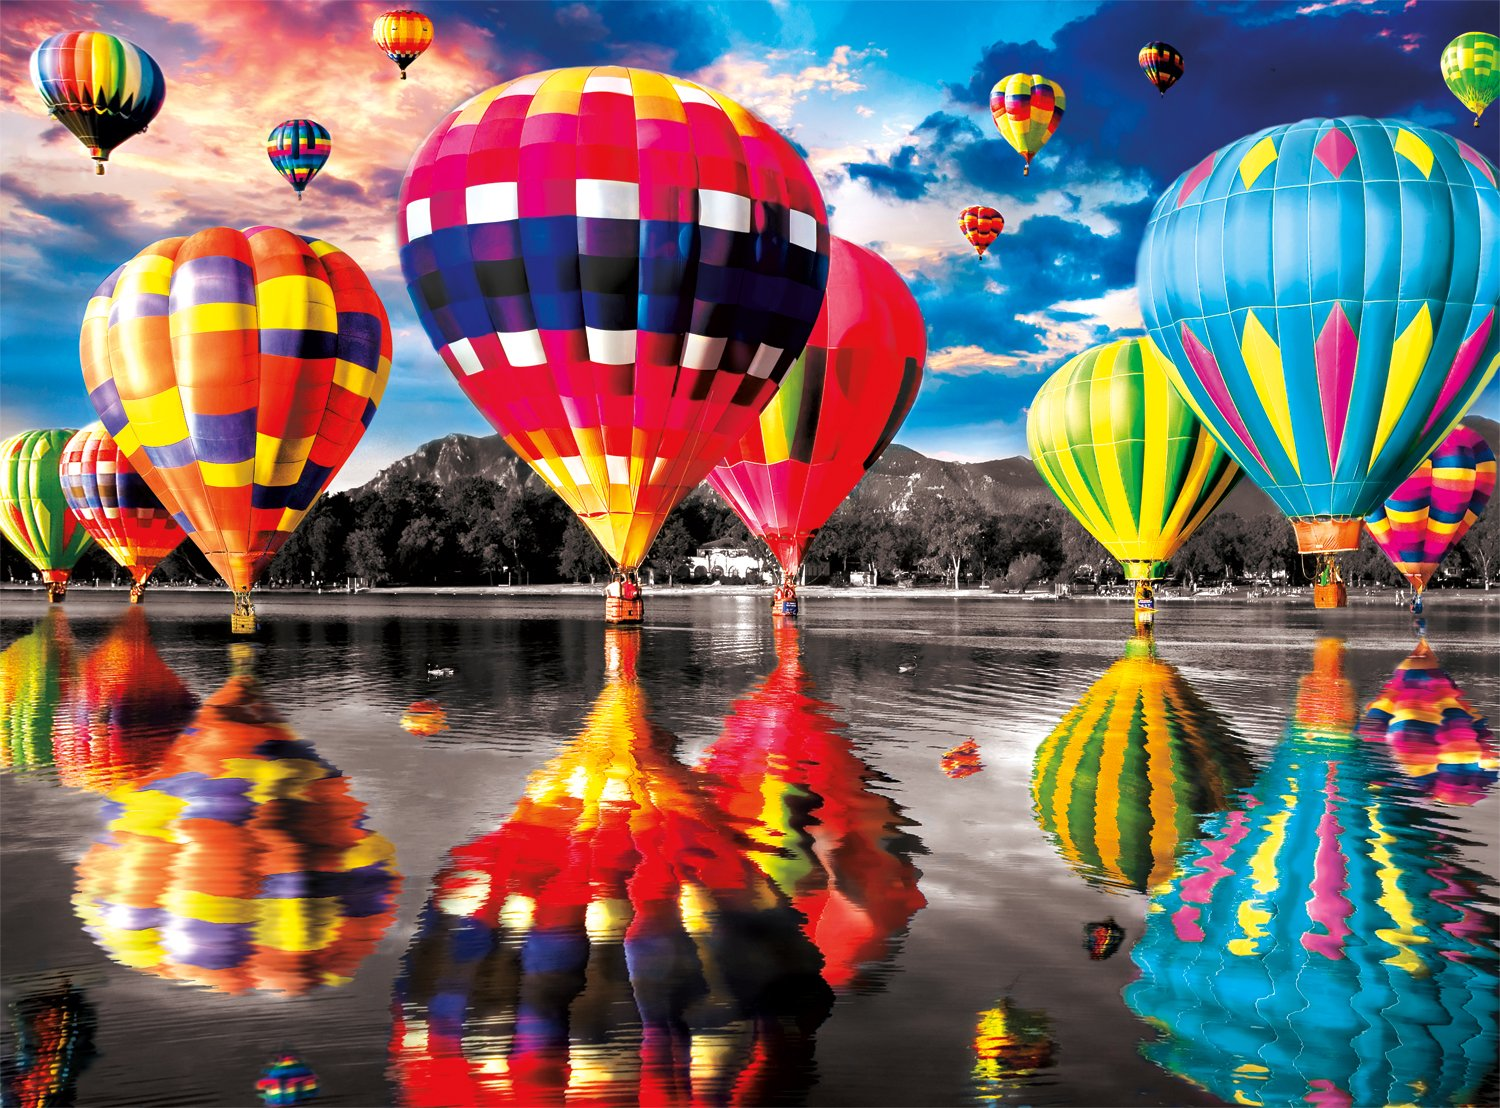 Buffalo Games Balloon Dream Jigsaw Puzzle from The Farbe Splash Collection (1000 Piece) by Buffalo Games